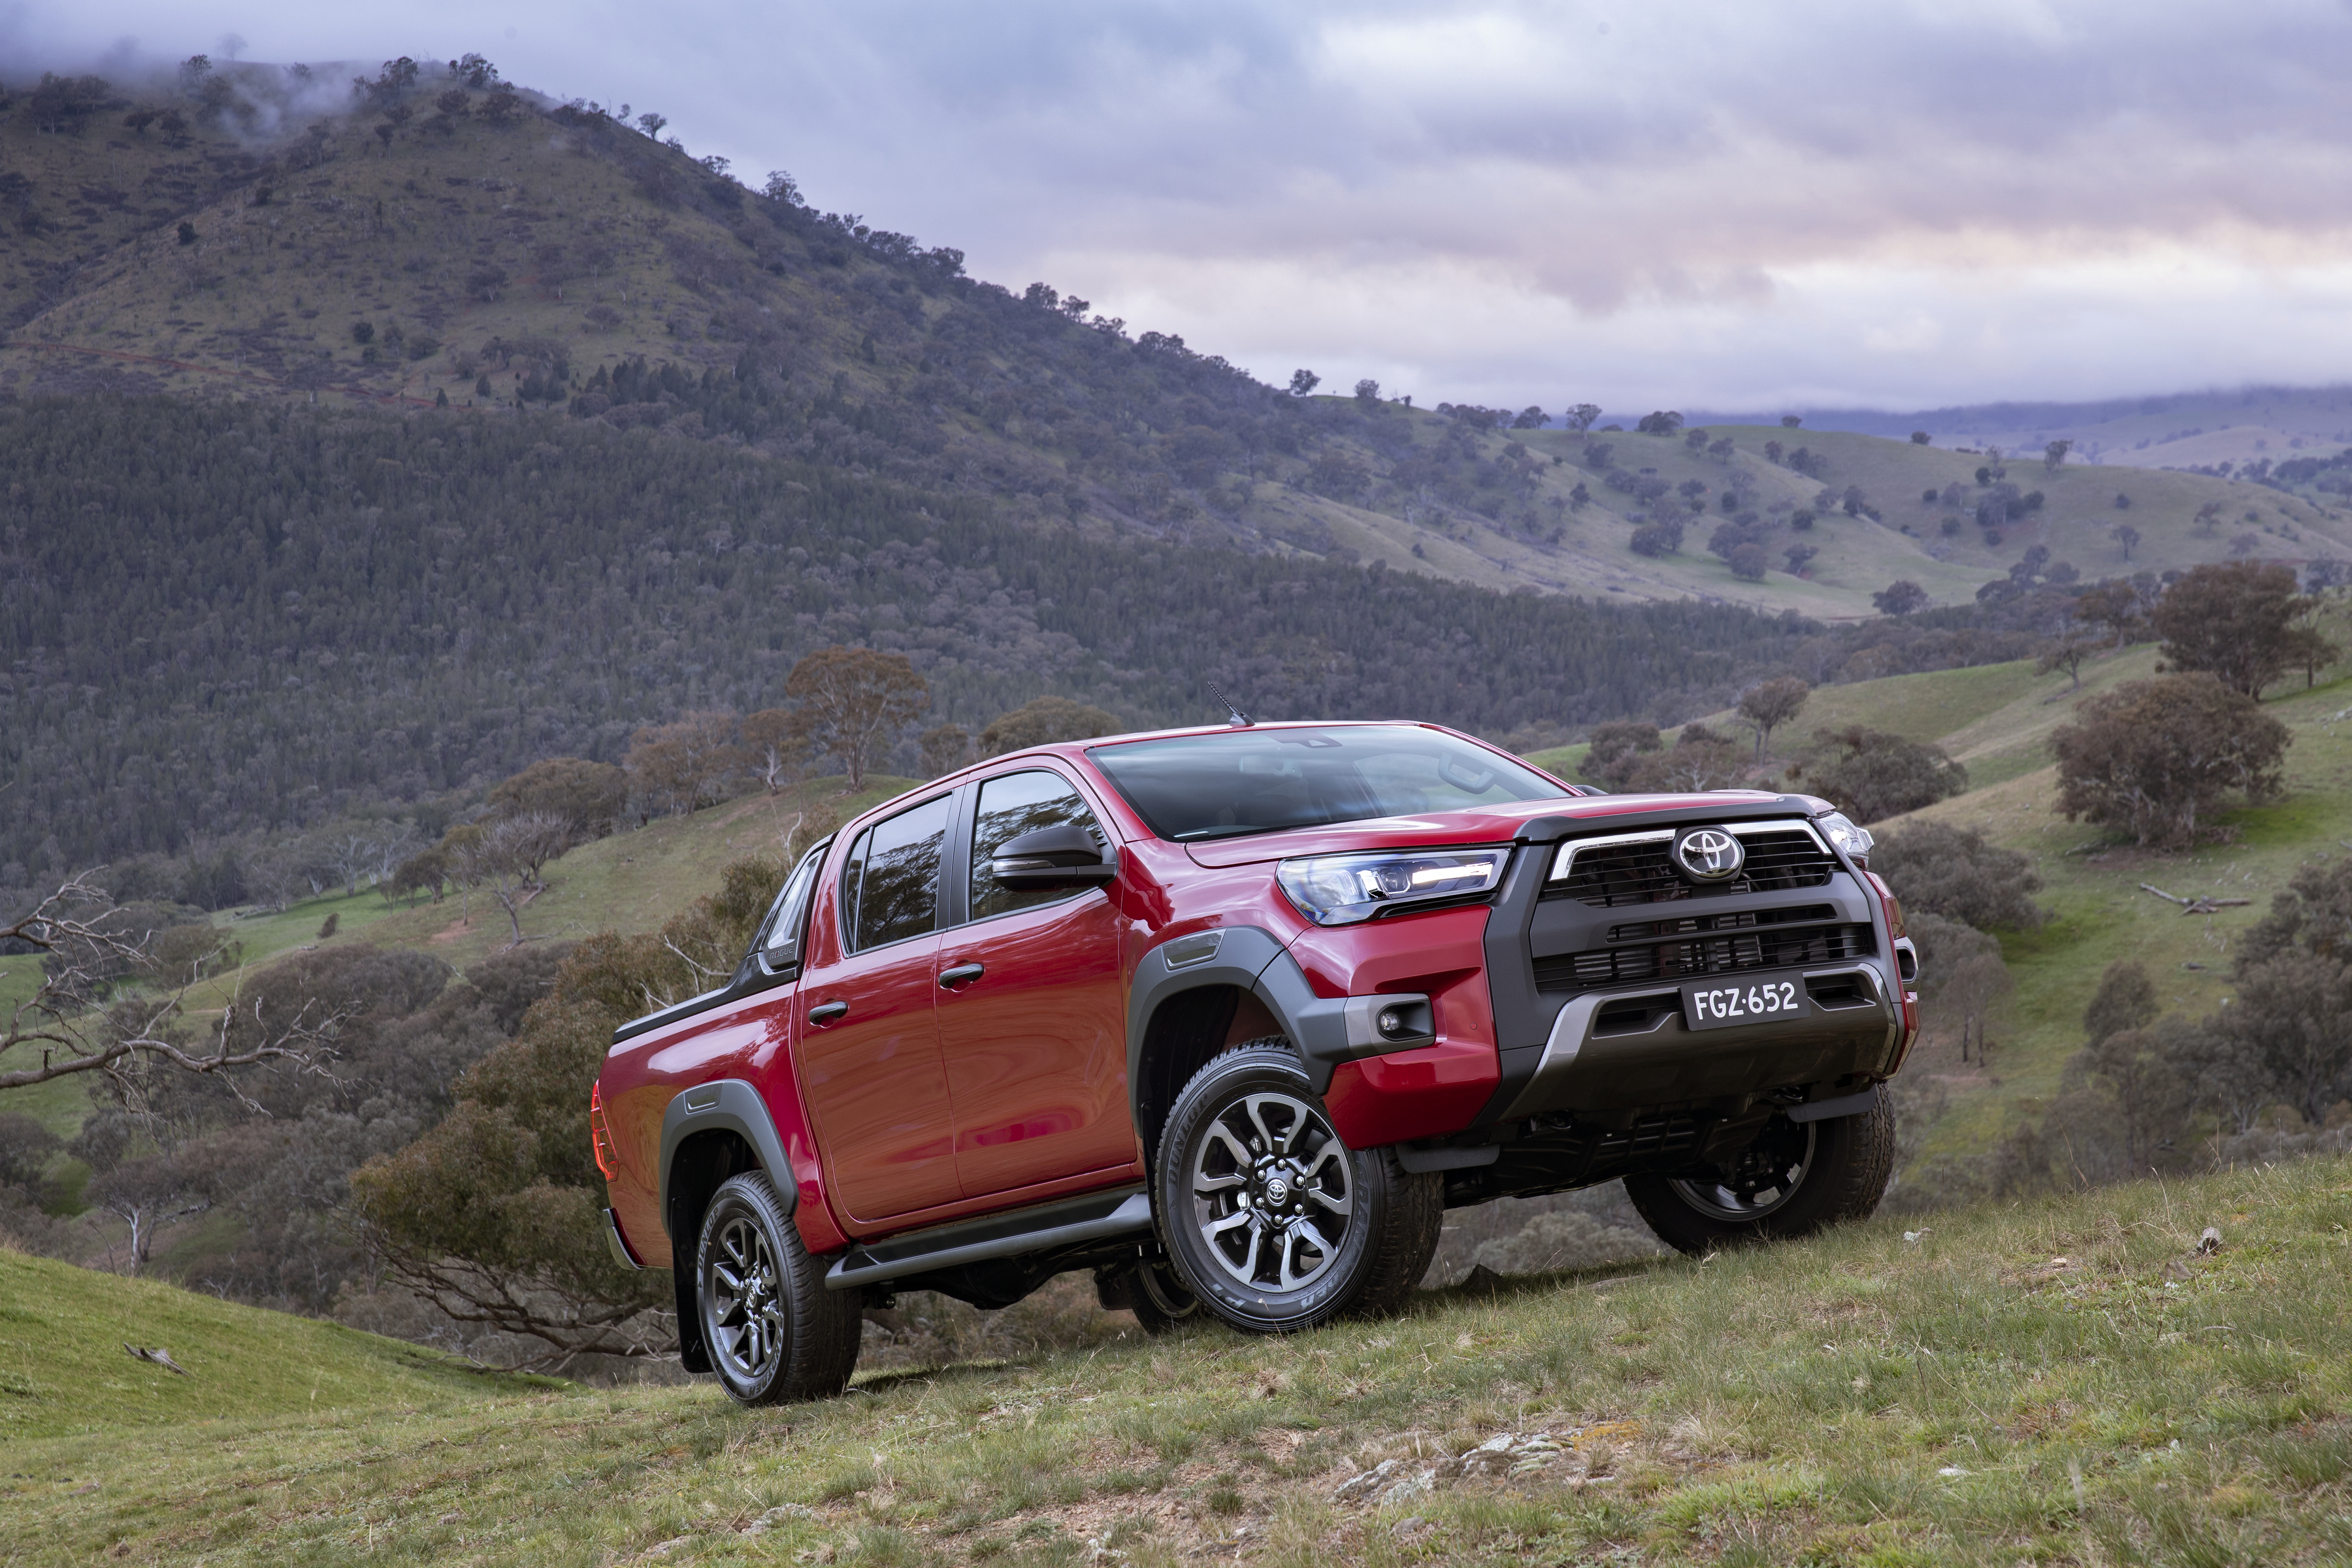 2020 Toyota HiLux Rogue.